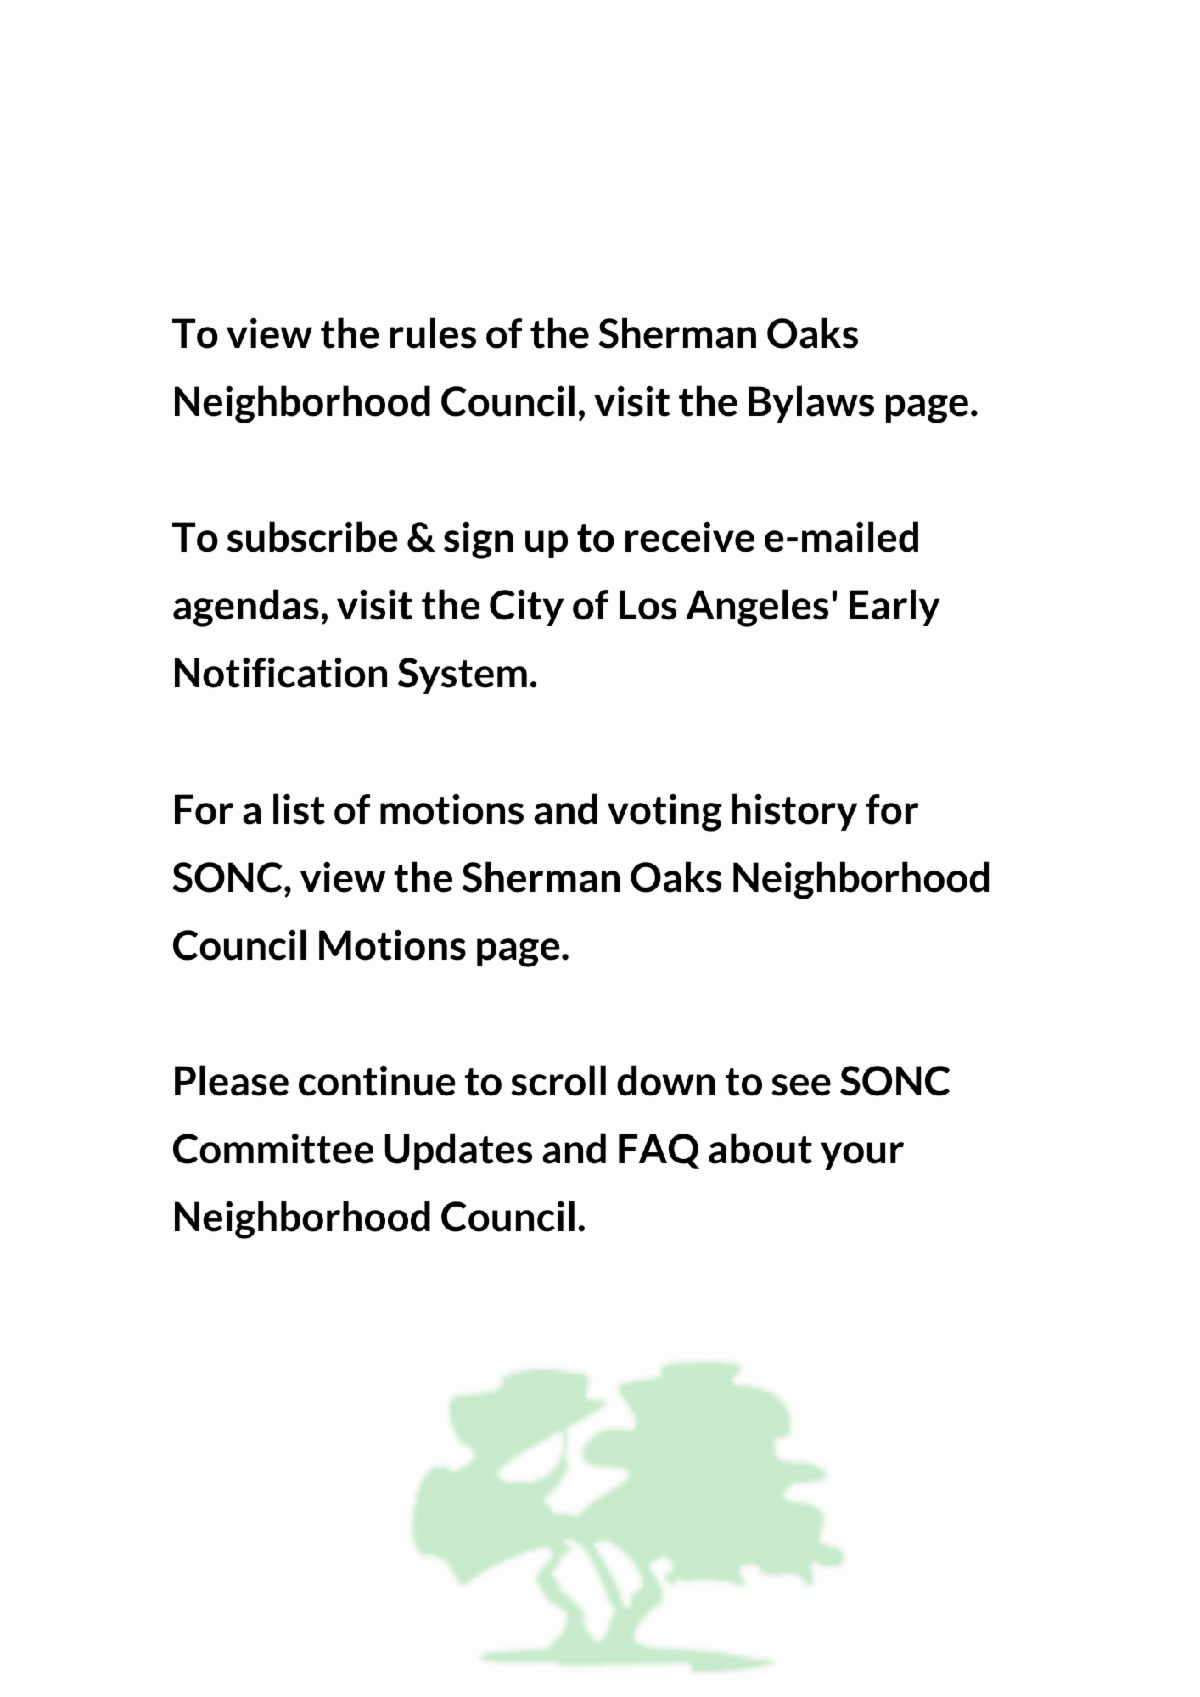 To view the rules of the Sherman Oaks Neighborhood Council visit theBylawspage. To subscribe sign up to receive emailed agendas visit the City of Los AngelesEarly Notification System. For a list of motions and voting history visit SONC s website.